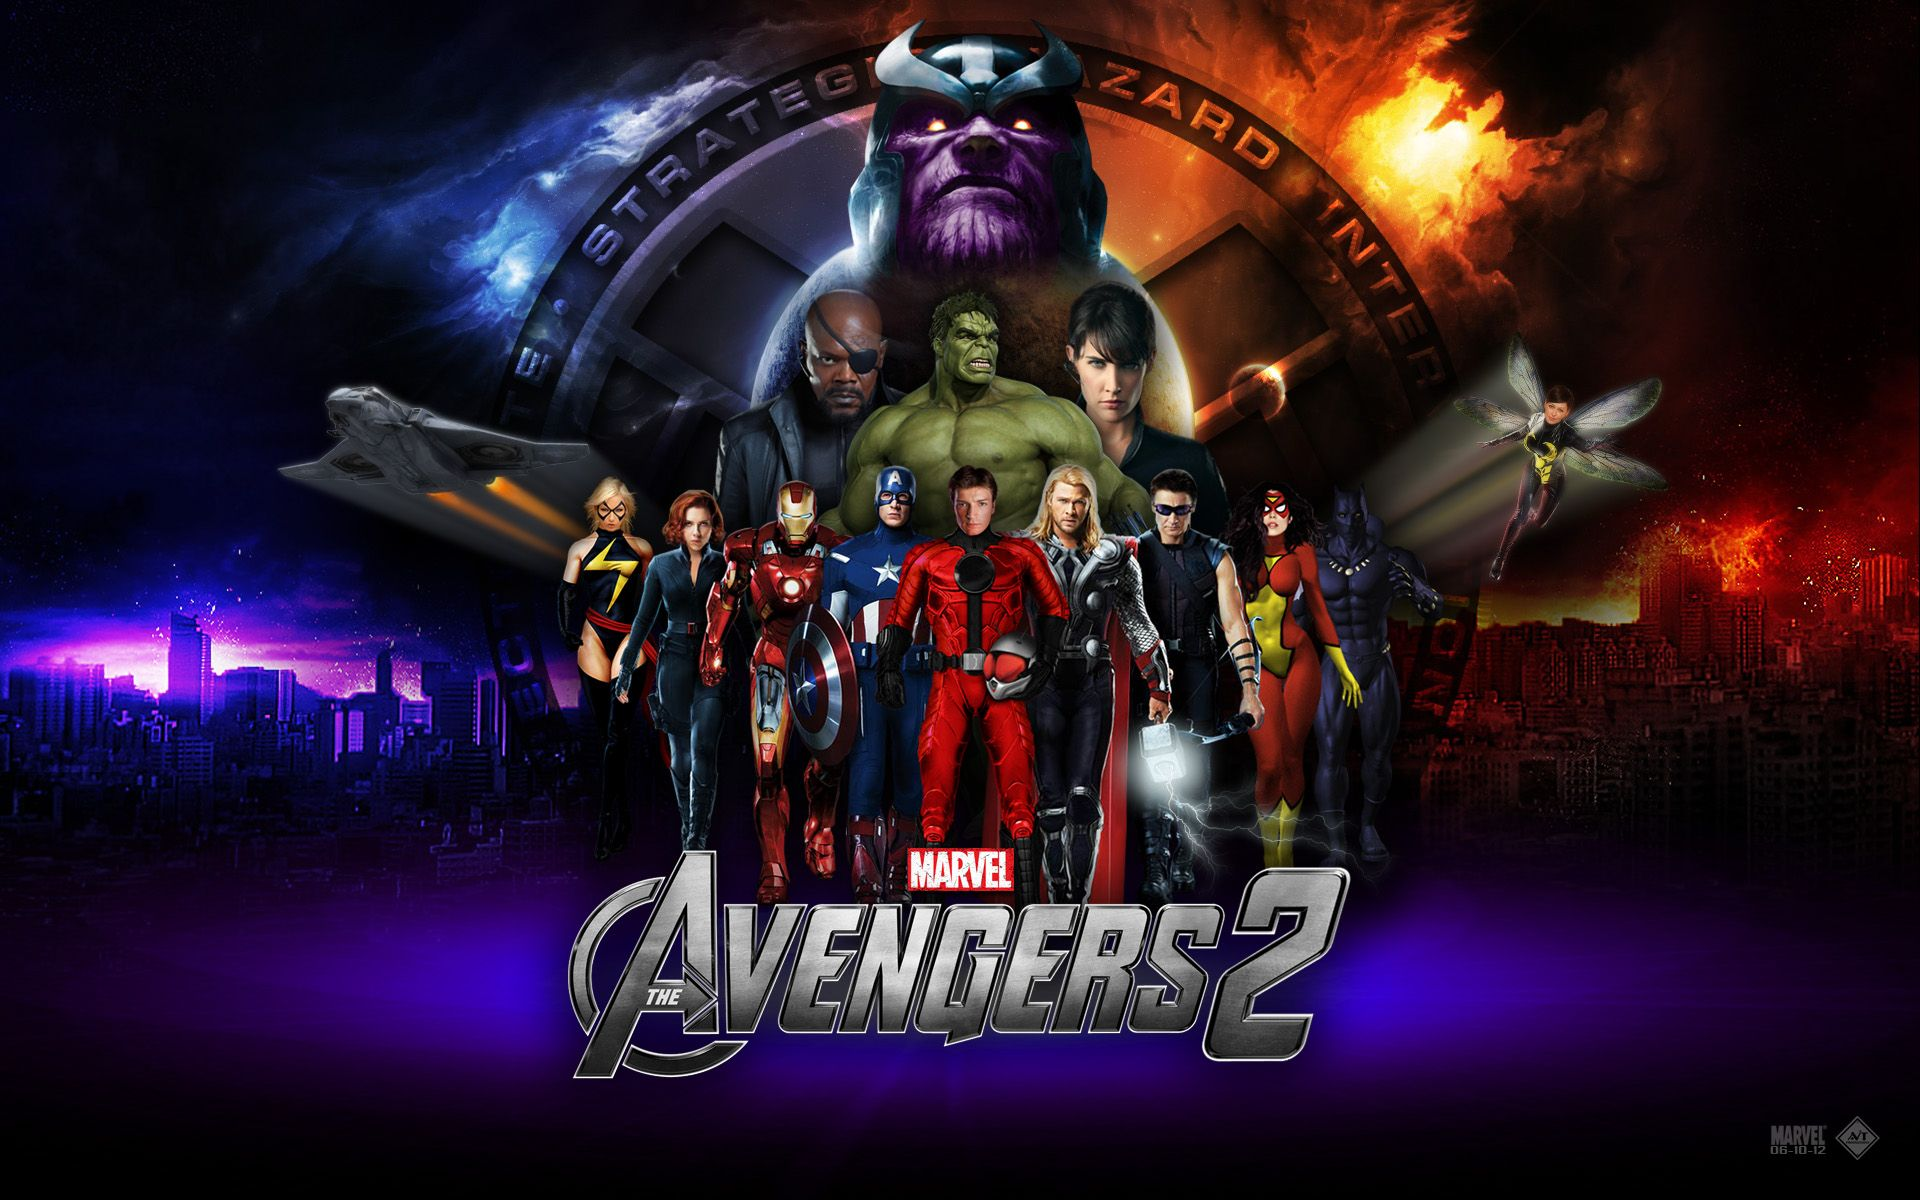 Collection of The Avengers Wallpaper on HDWallpapers 1280